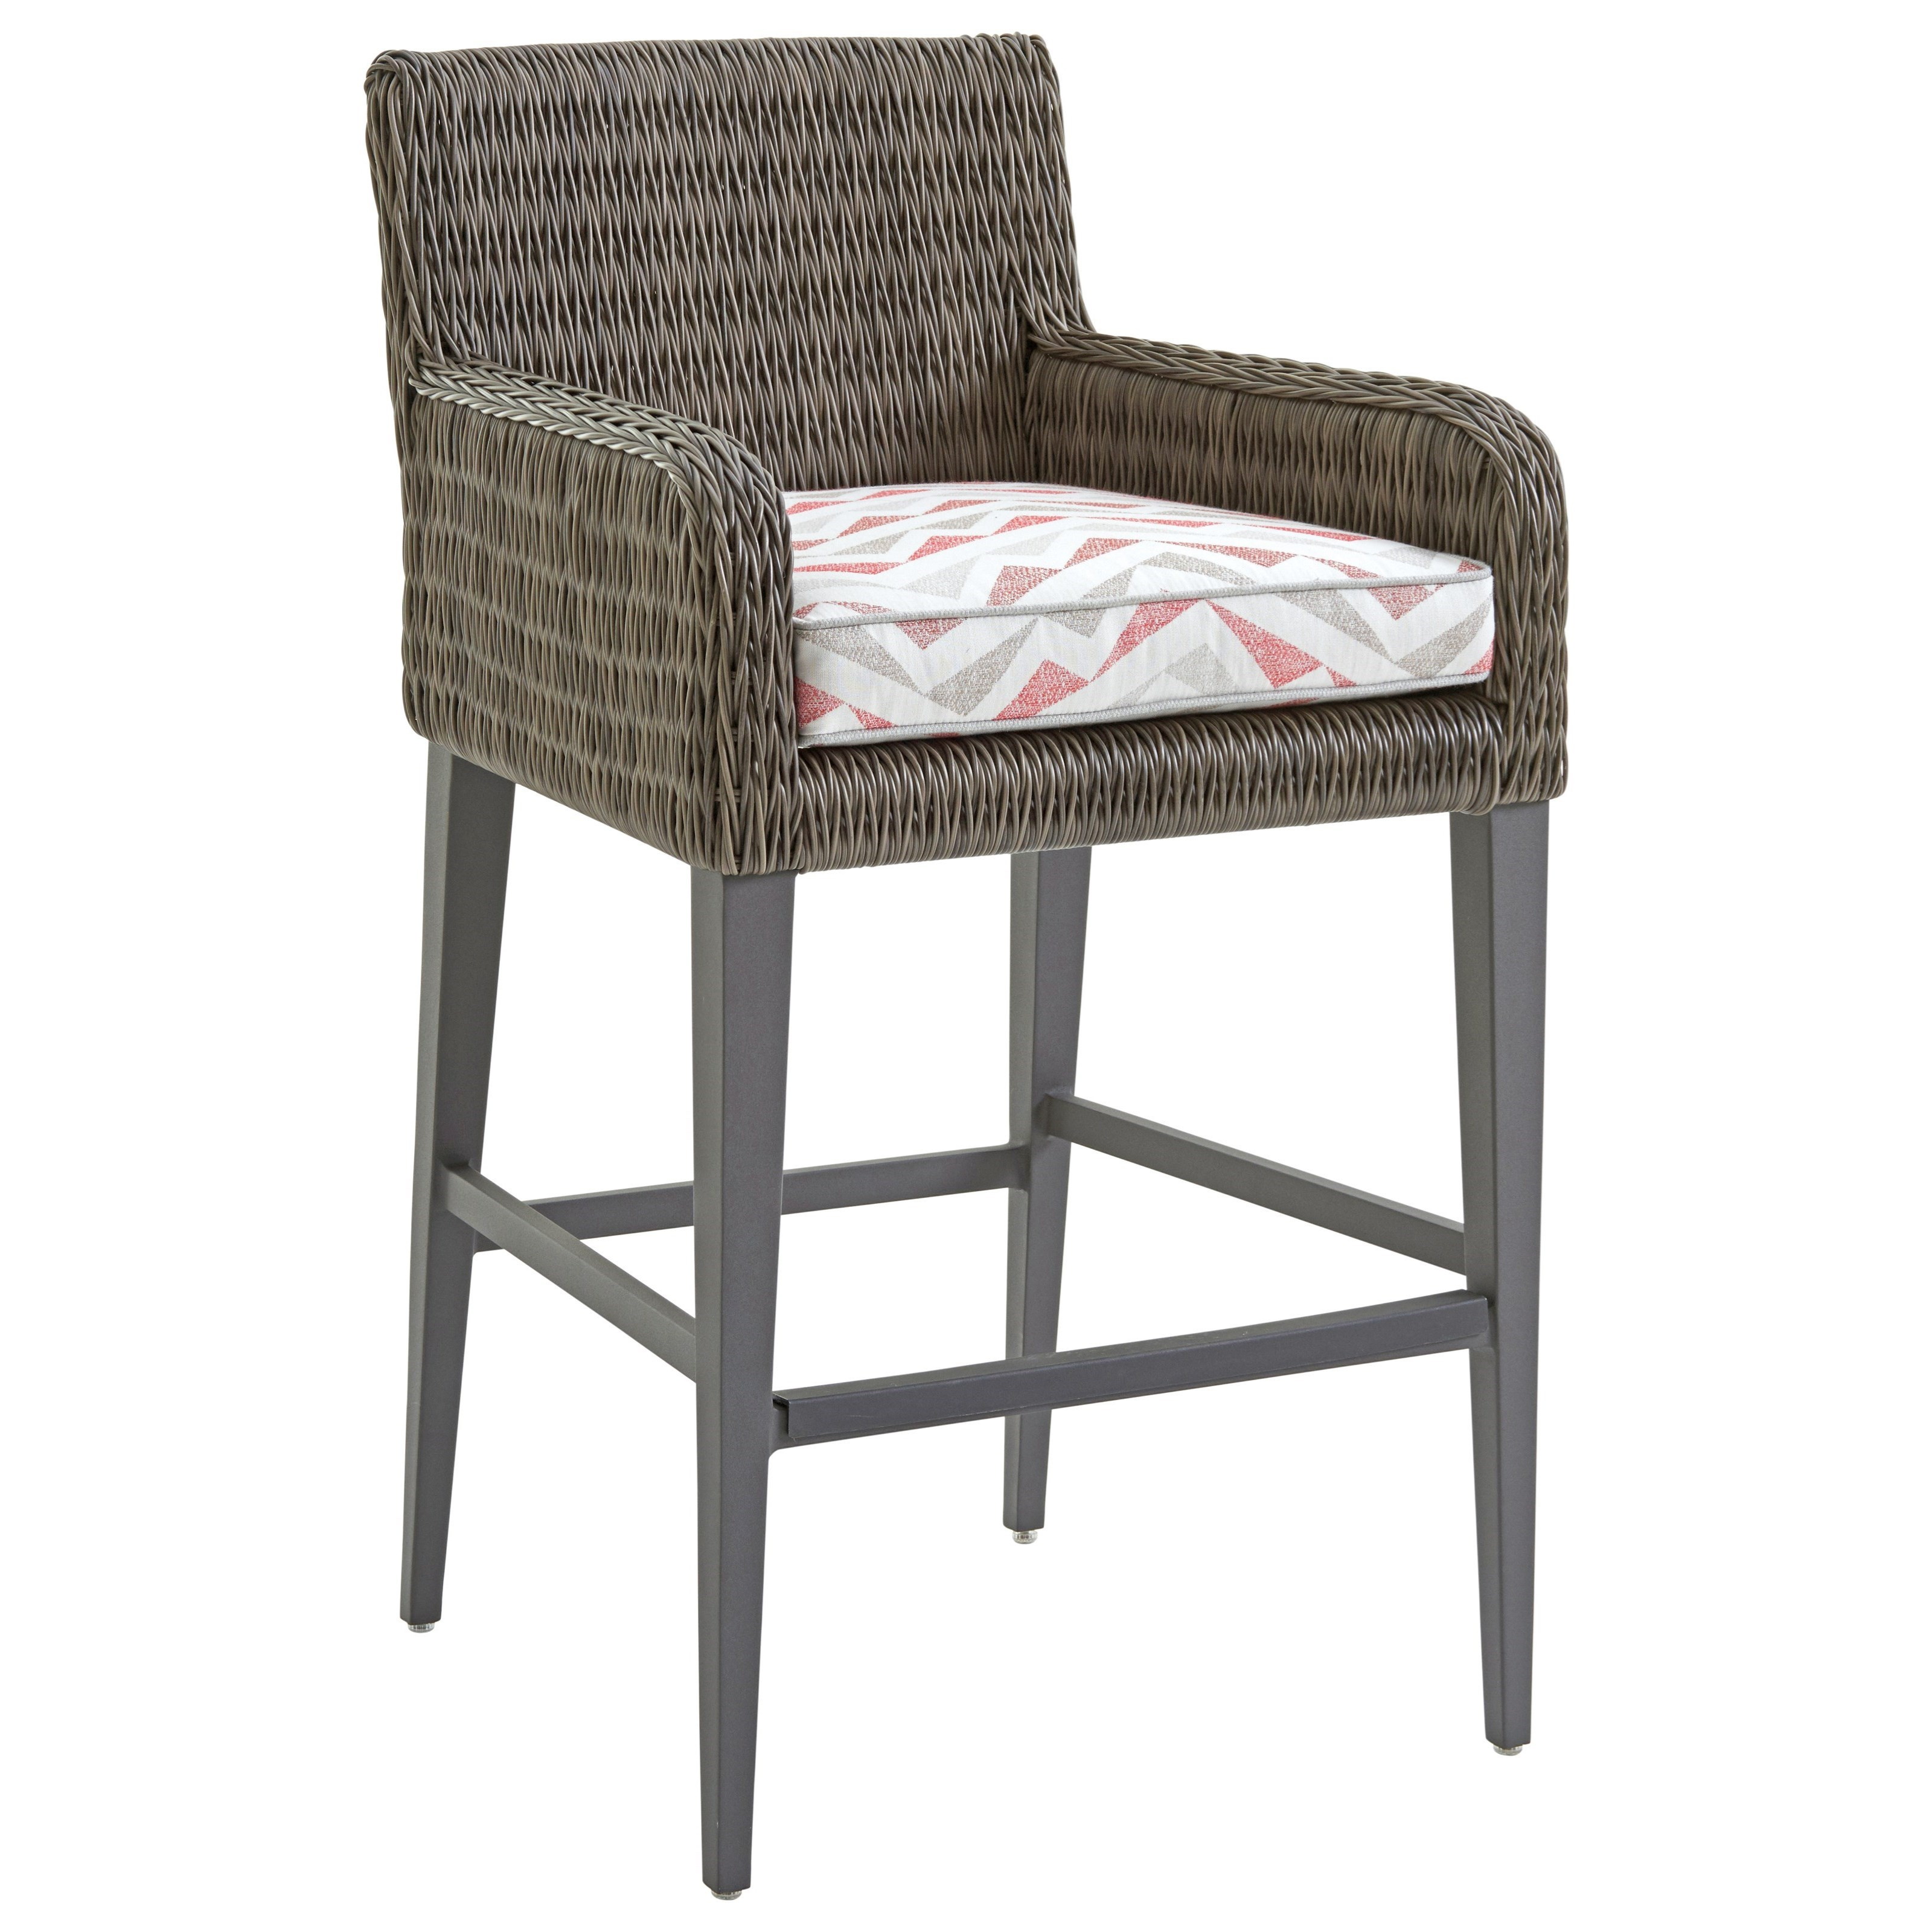 Miraculous Tommy Bahama Outdoor Living Cypress Point Ocean Terrace Unemploymentrelief Wooden Chair Designs For Living Room Unemploymentrelieforg